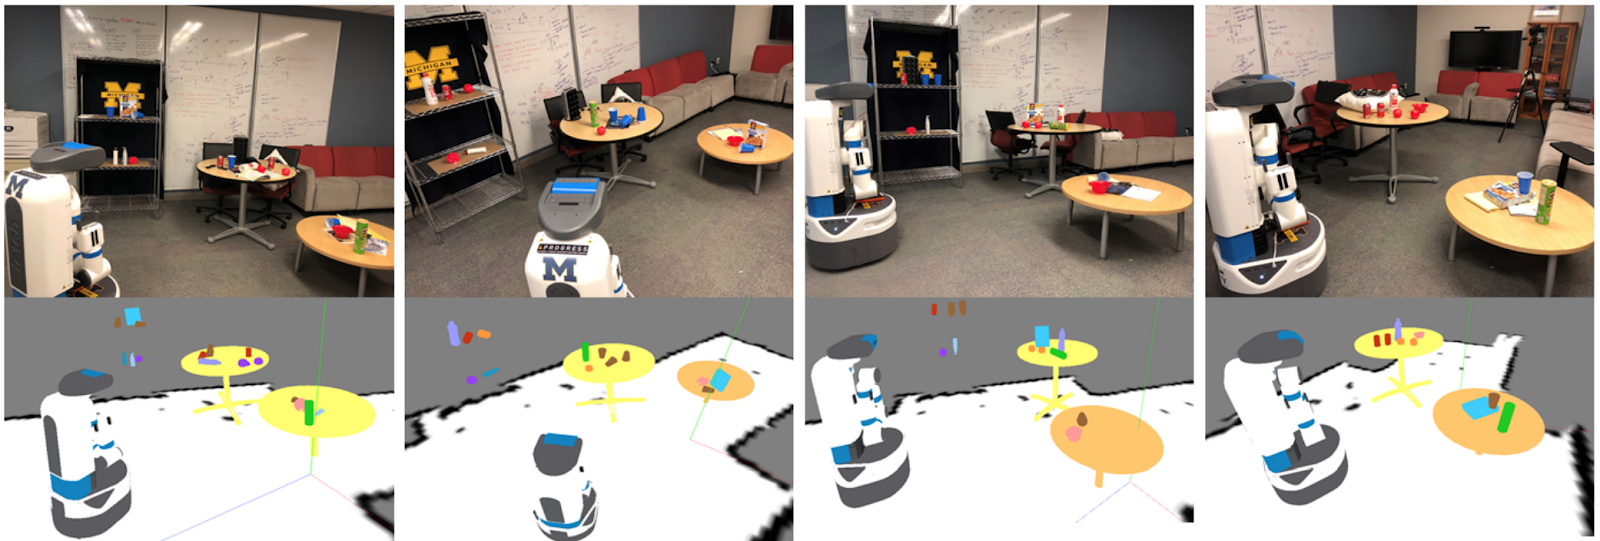 Figure 8: Robot semantically maps a student lounge in four different visits. Each column shows an RGB snapshot of the environment, together with the corresponding semantic map composed by the detected and localized objects. We model contextual relations between objects and temporal consistency of object locations. Video link: https://www.youtube.com/watch?v=W-6ViSlrrZg